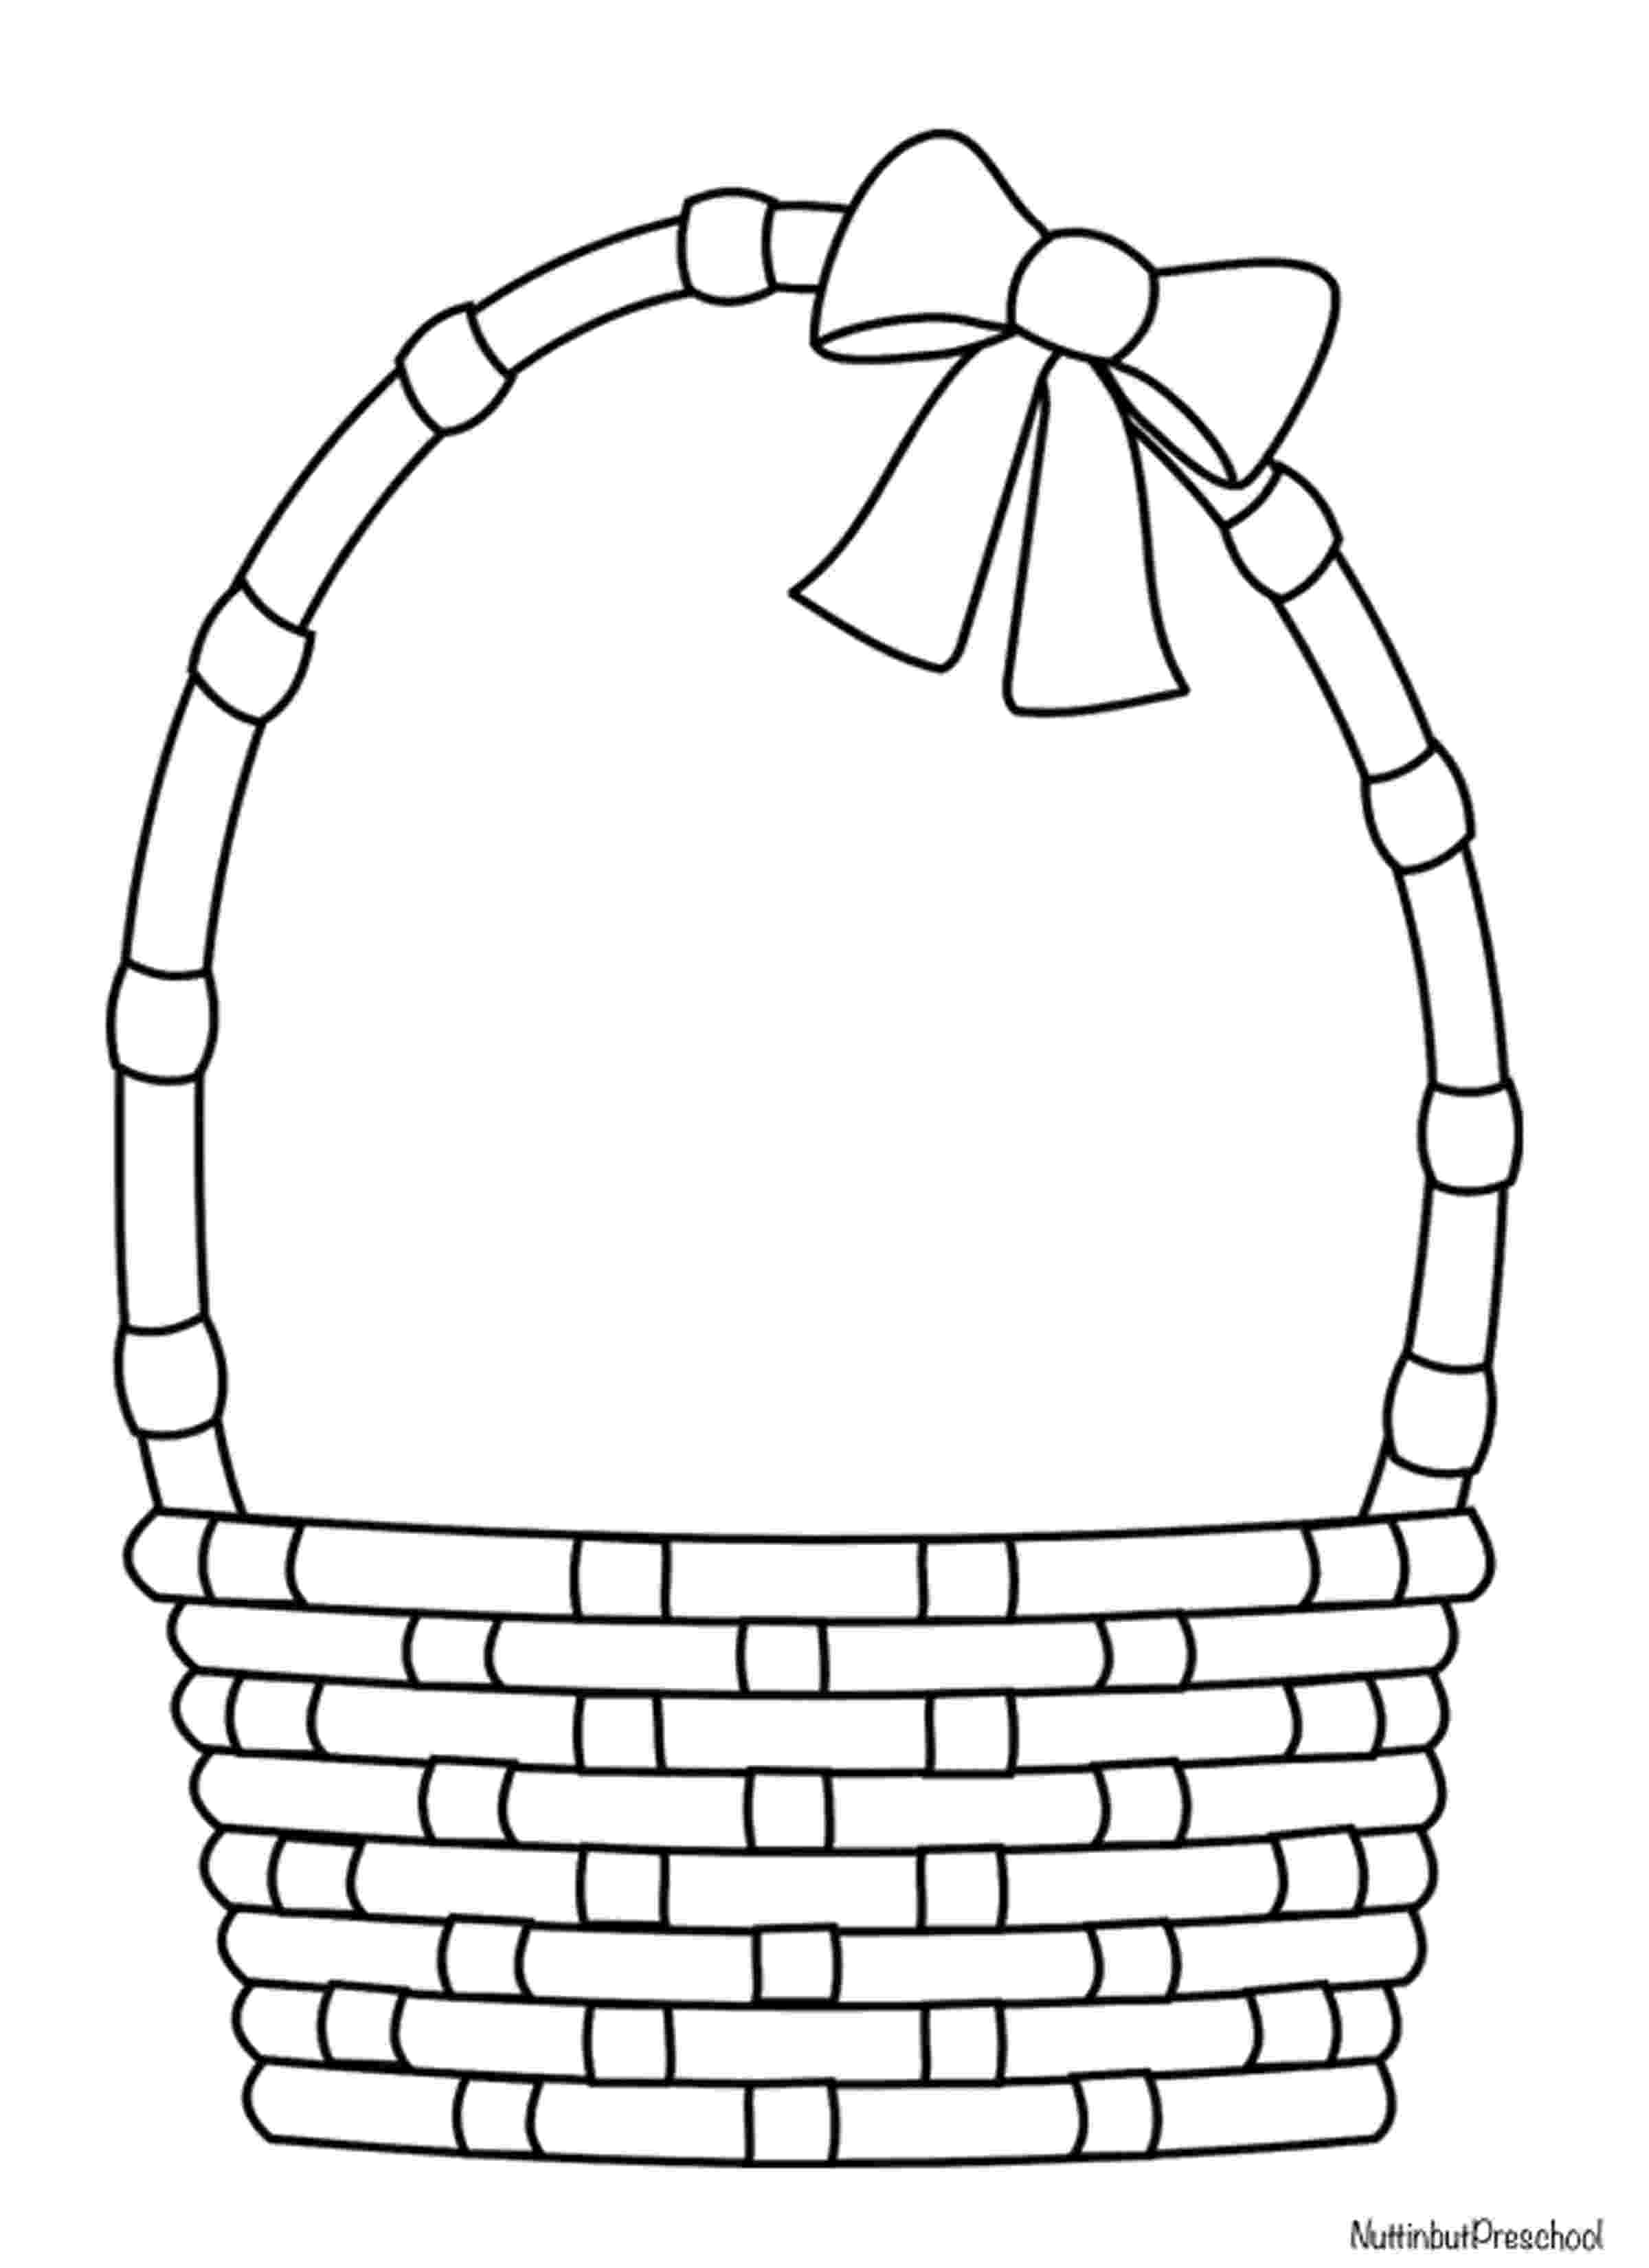 easter basket coloring pages to print easter pages to color coloring pages part 3 coloring print to easter basket pages